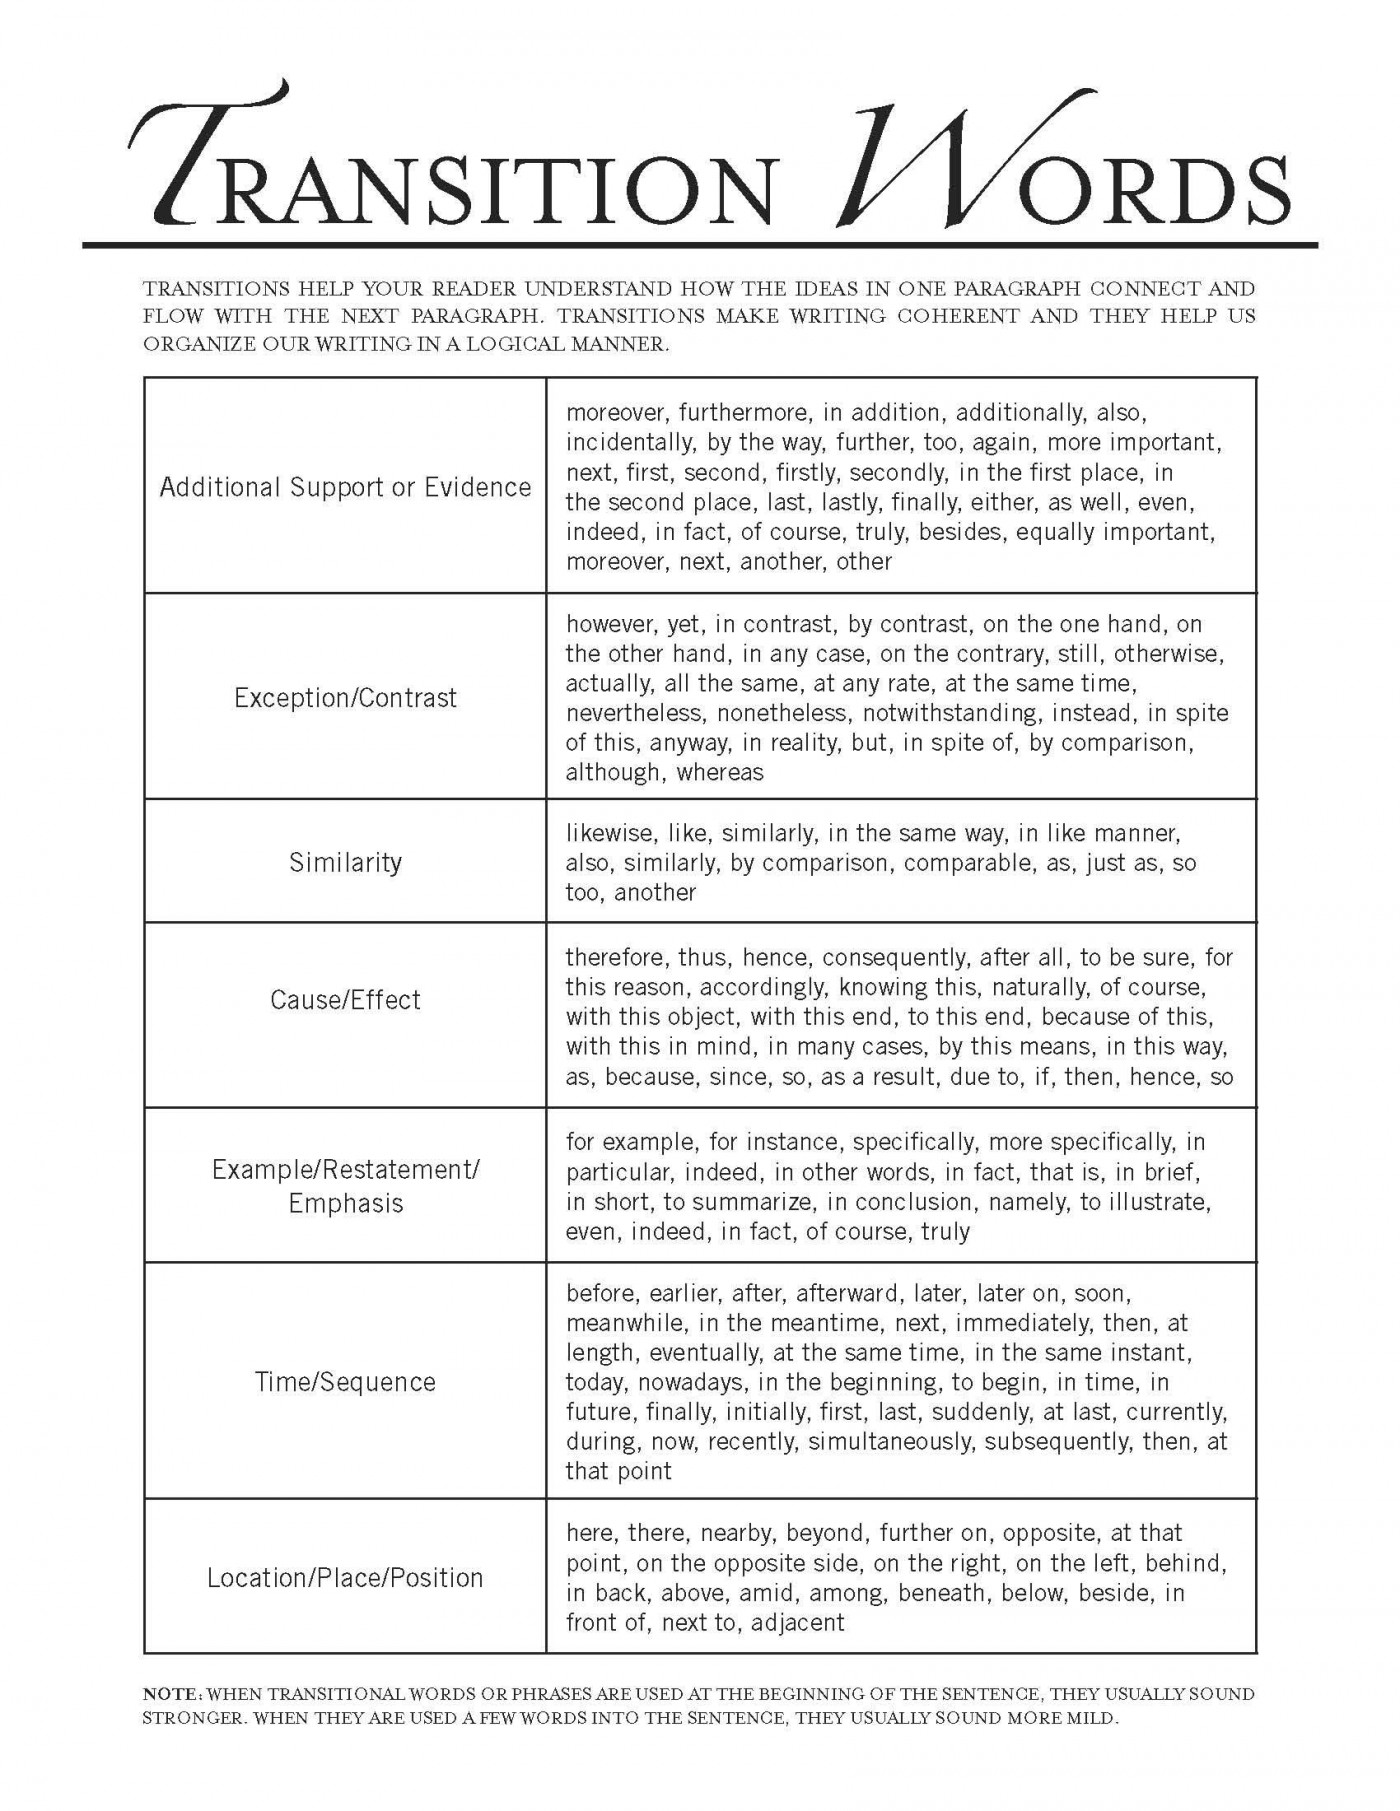 001 Transition Words And Phrases For Essays Essay Amazing Opinion Writing Narrative 5th Grade Expository 1400